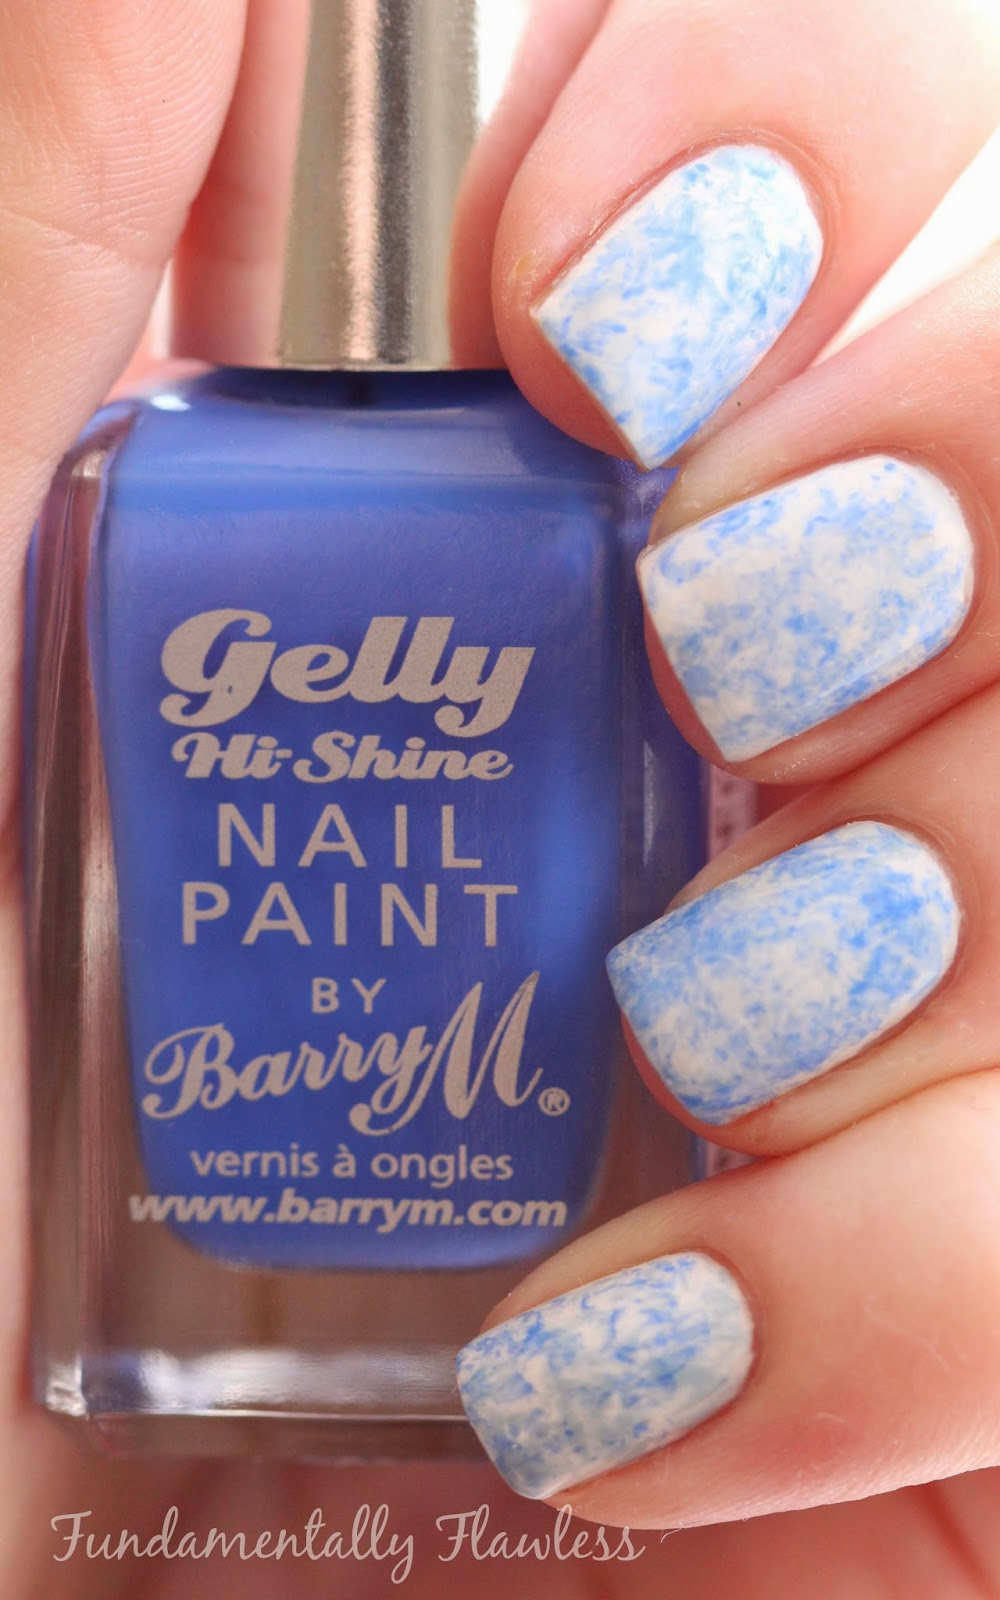 Barry M Damson Saran Wrap Bubble Wrap nails